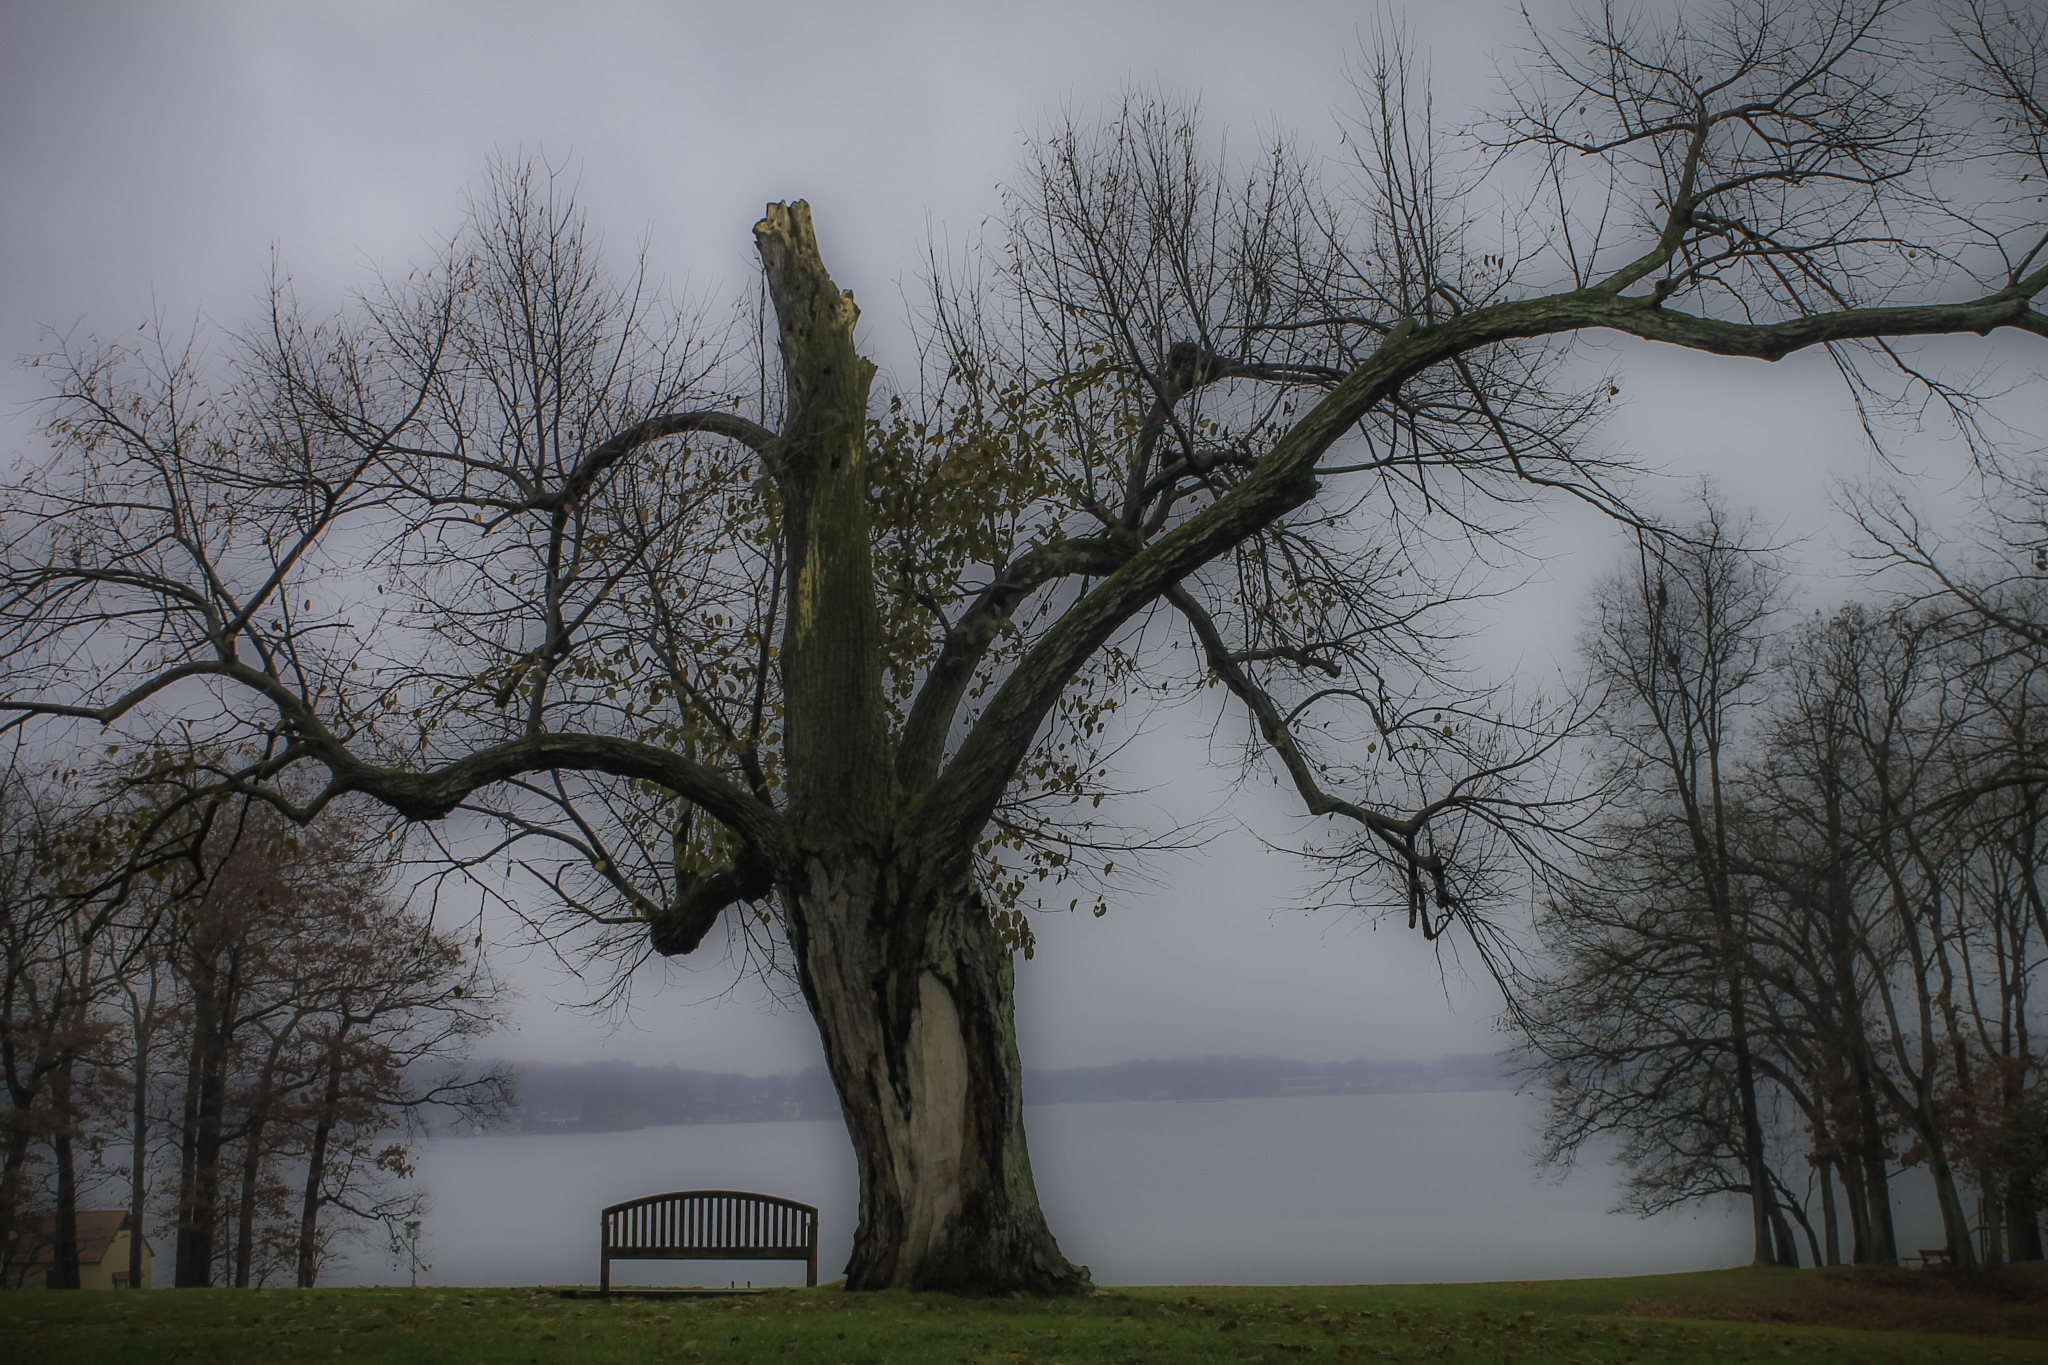 A Place to rest by Mark Hootman